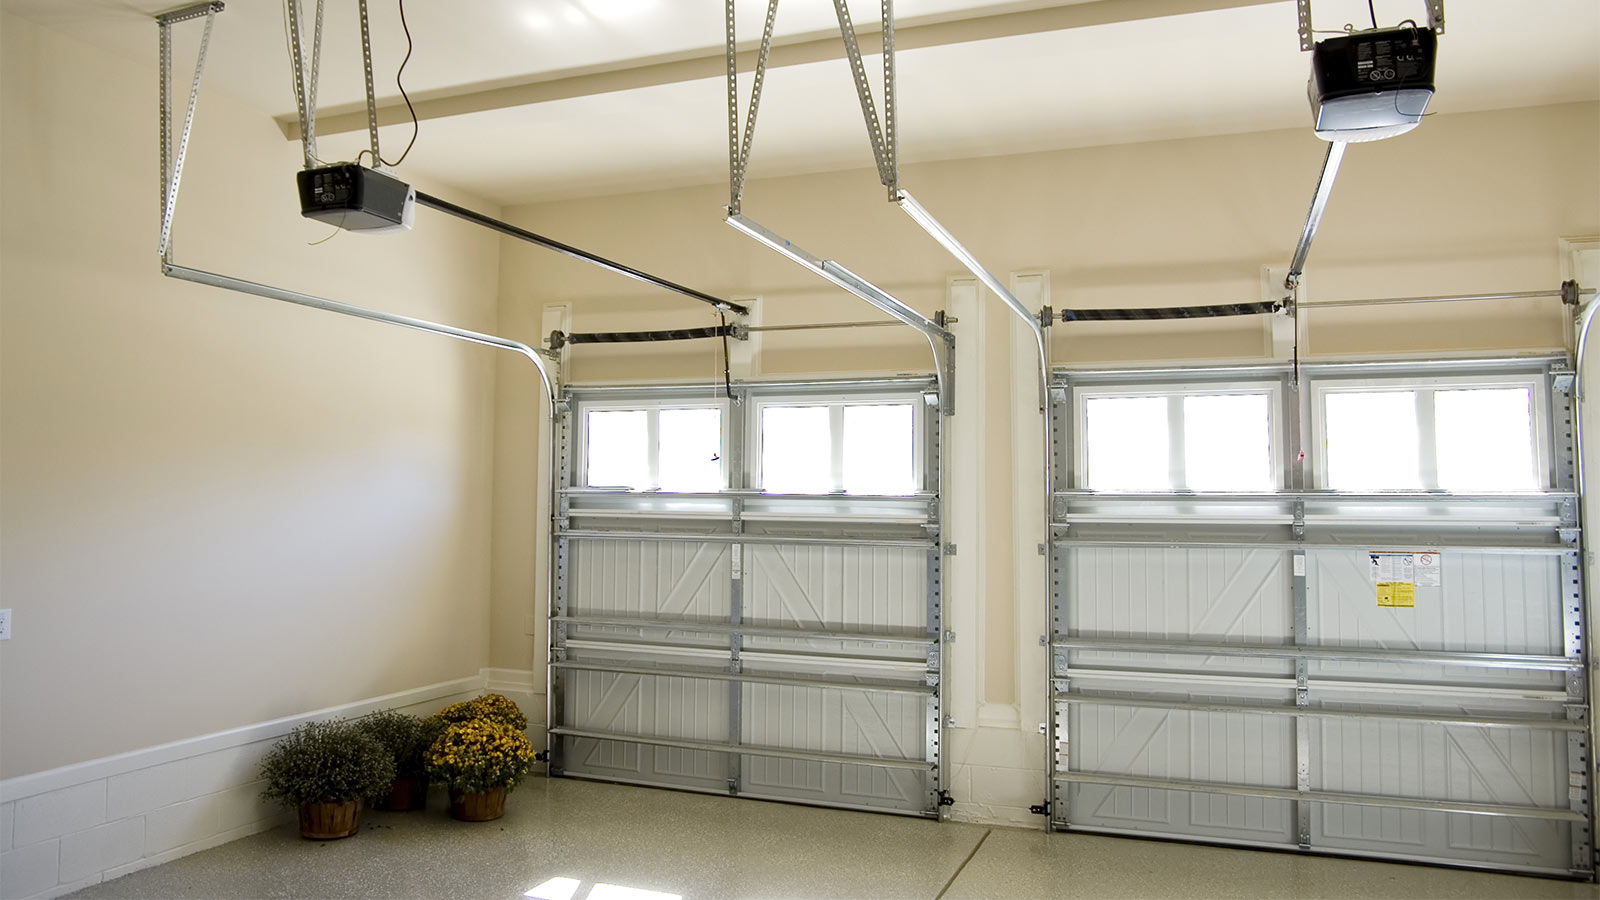 Sectional Garage Doors from Shop Front Shutters Rayleigh suppliers.